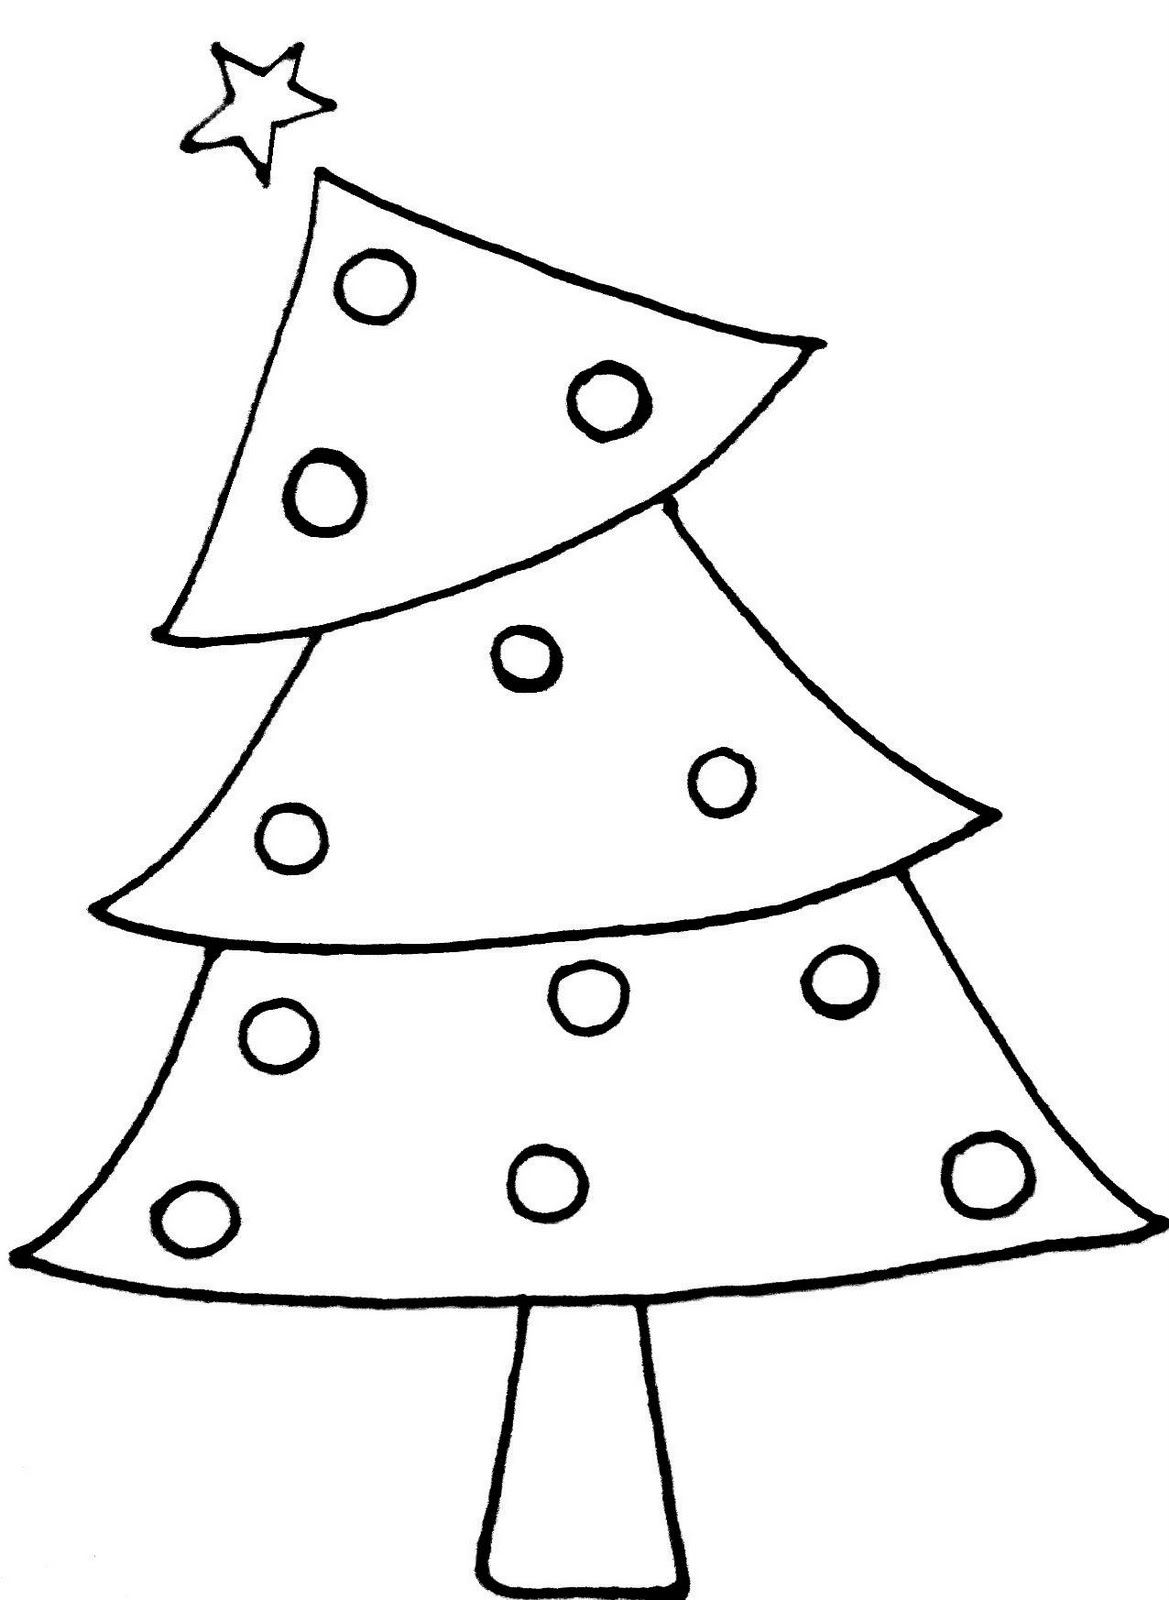 Black And White Christmas Tree Clip Art